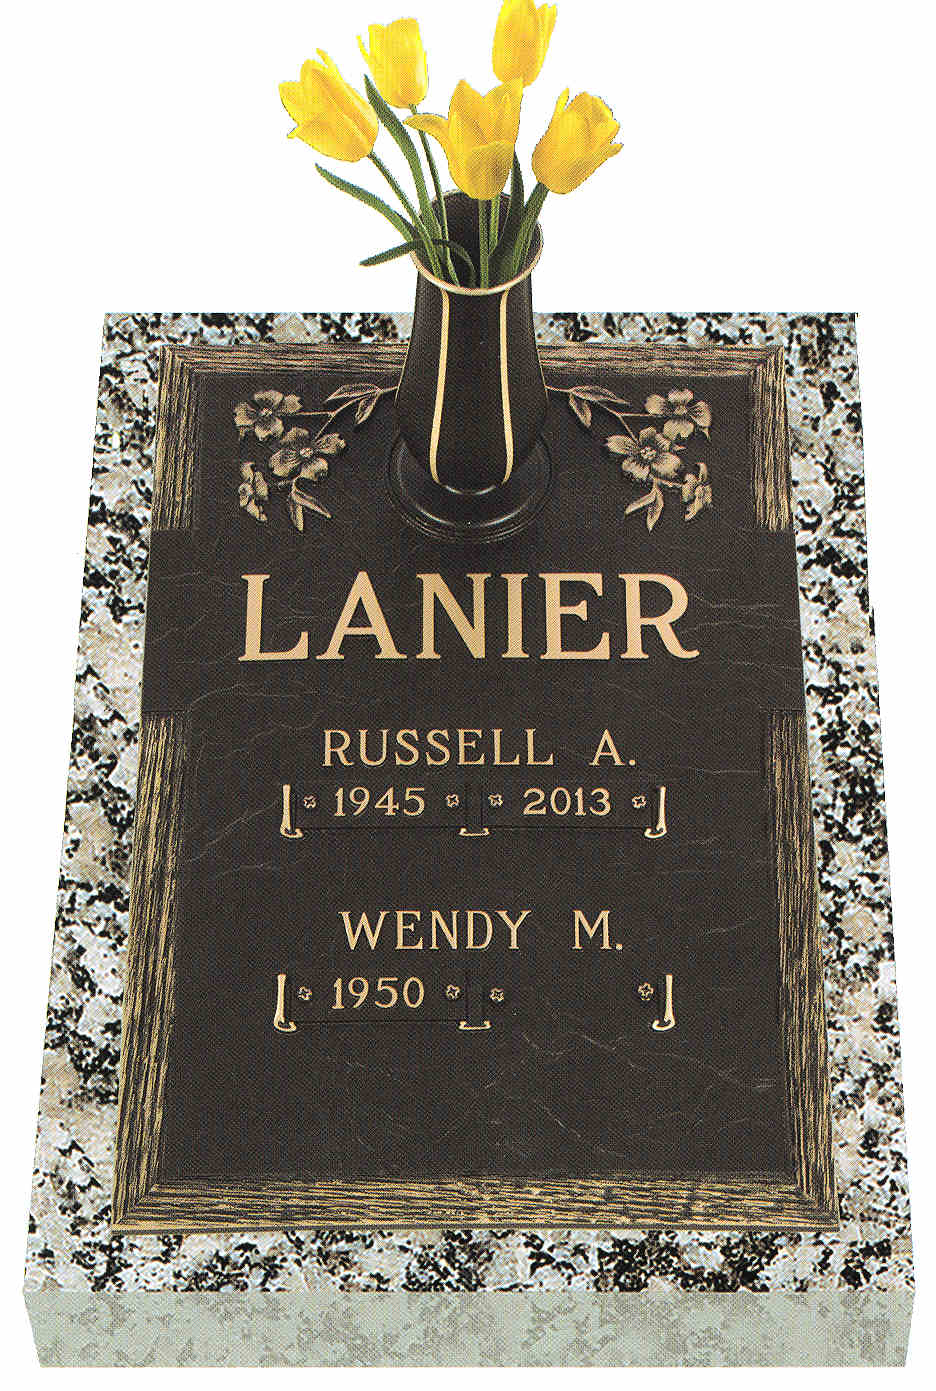 Burleson Monuments, Double Interment Grave Marker Designs, www.burlesonmonuments.com